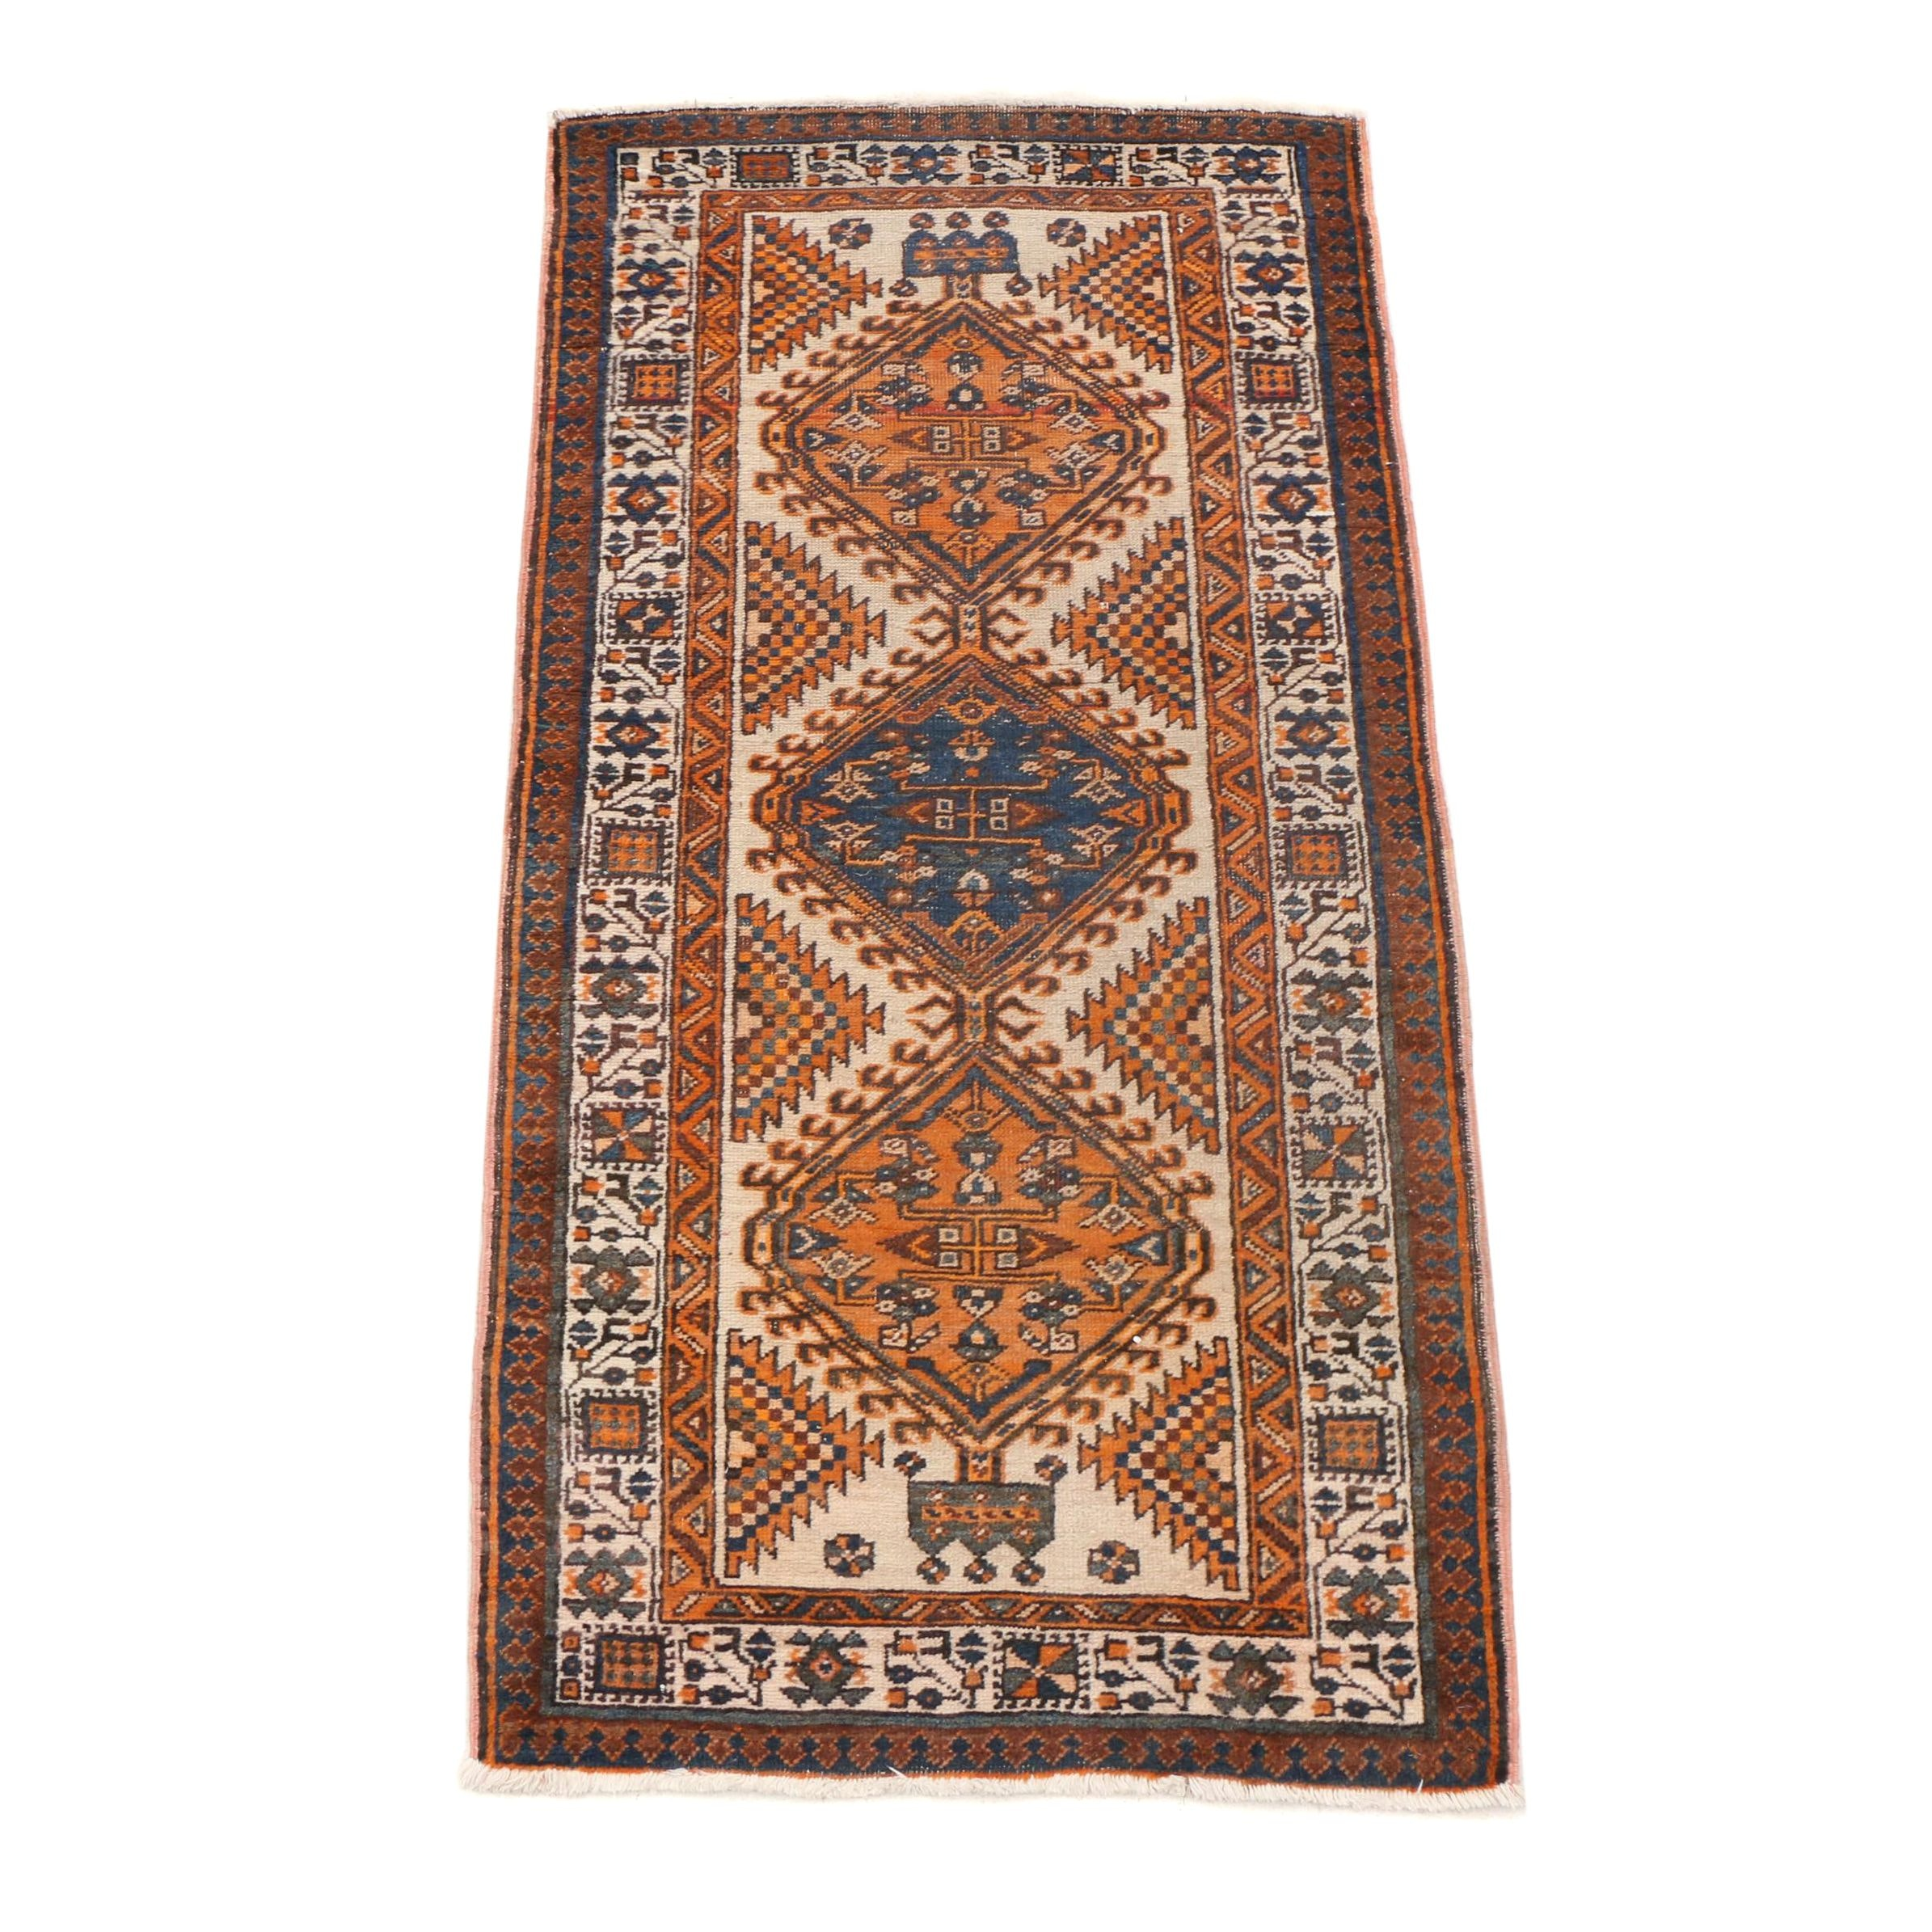 Hand-Knotted Anatolian Wool Rug from Avakian Brothers